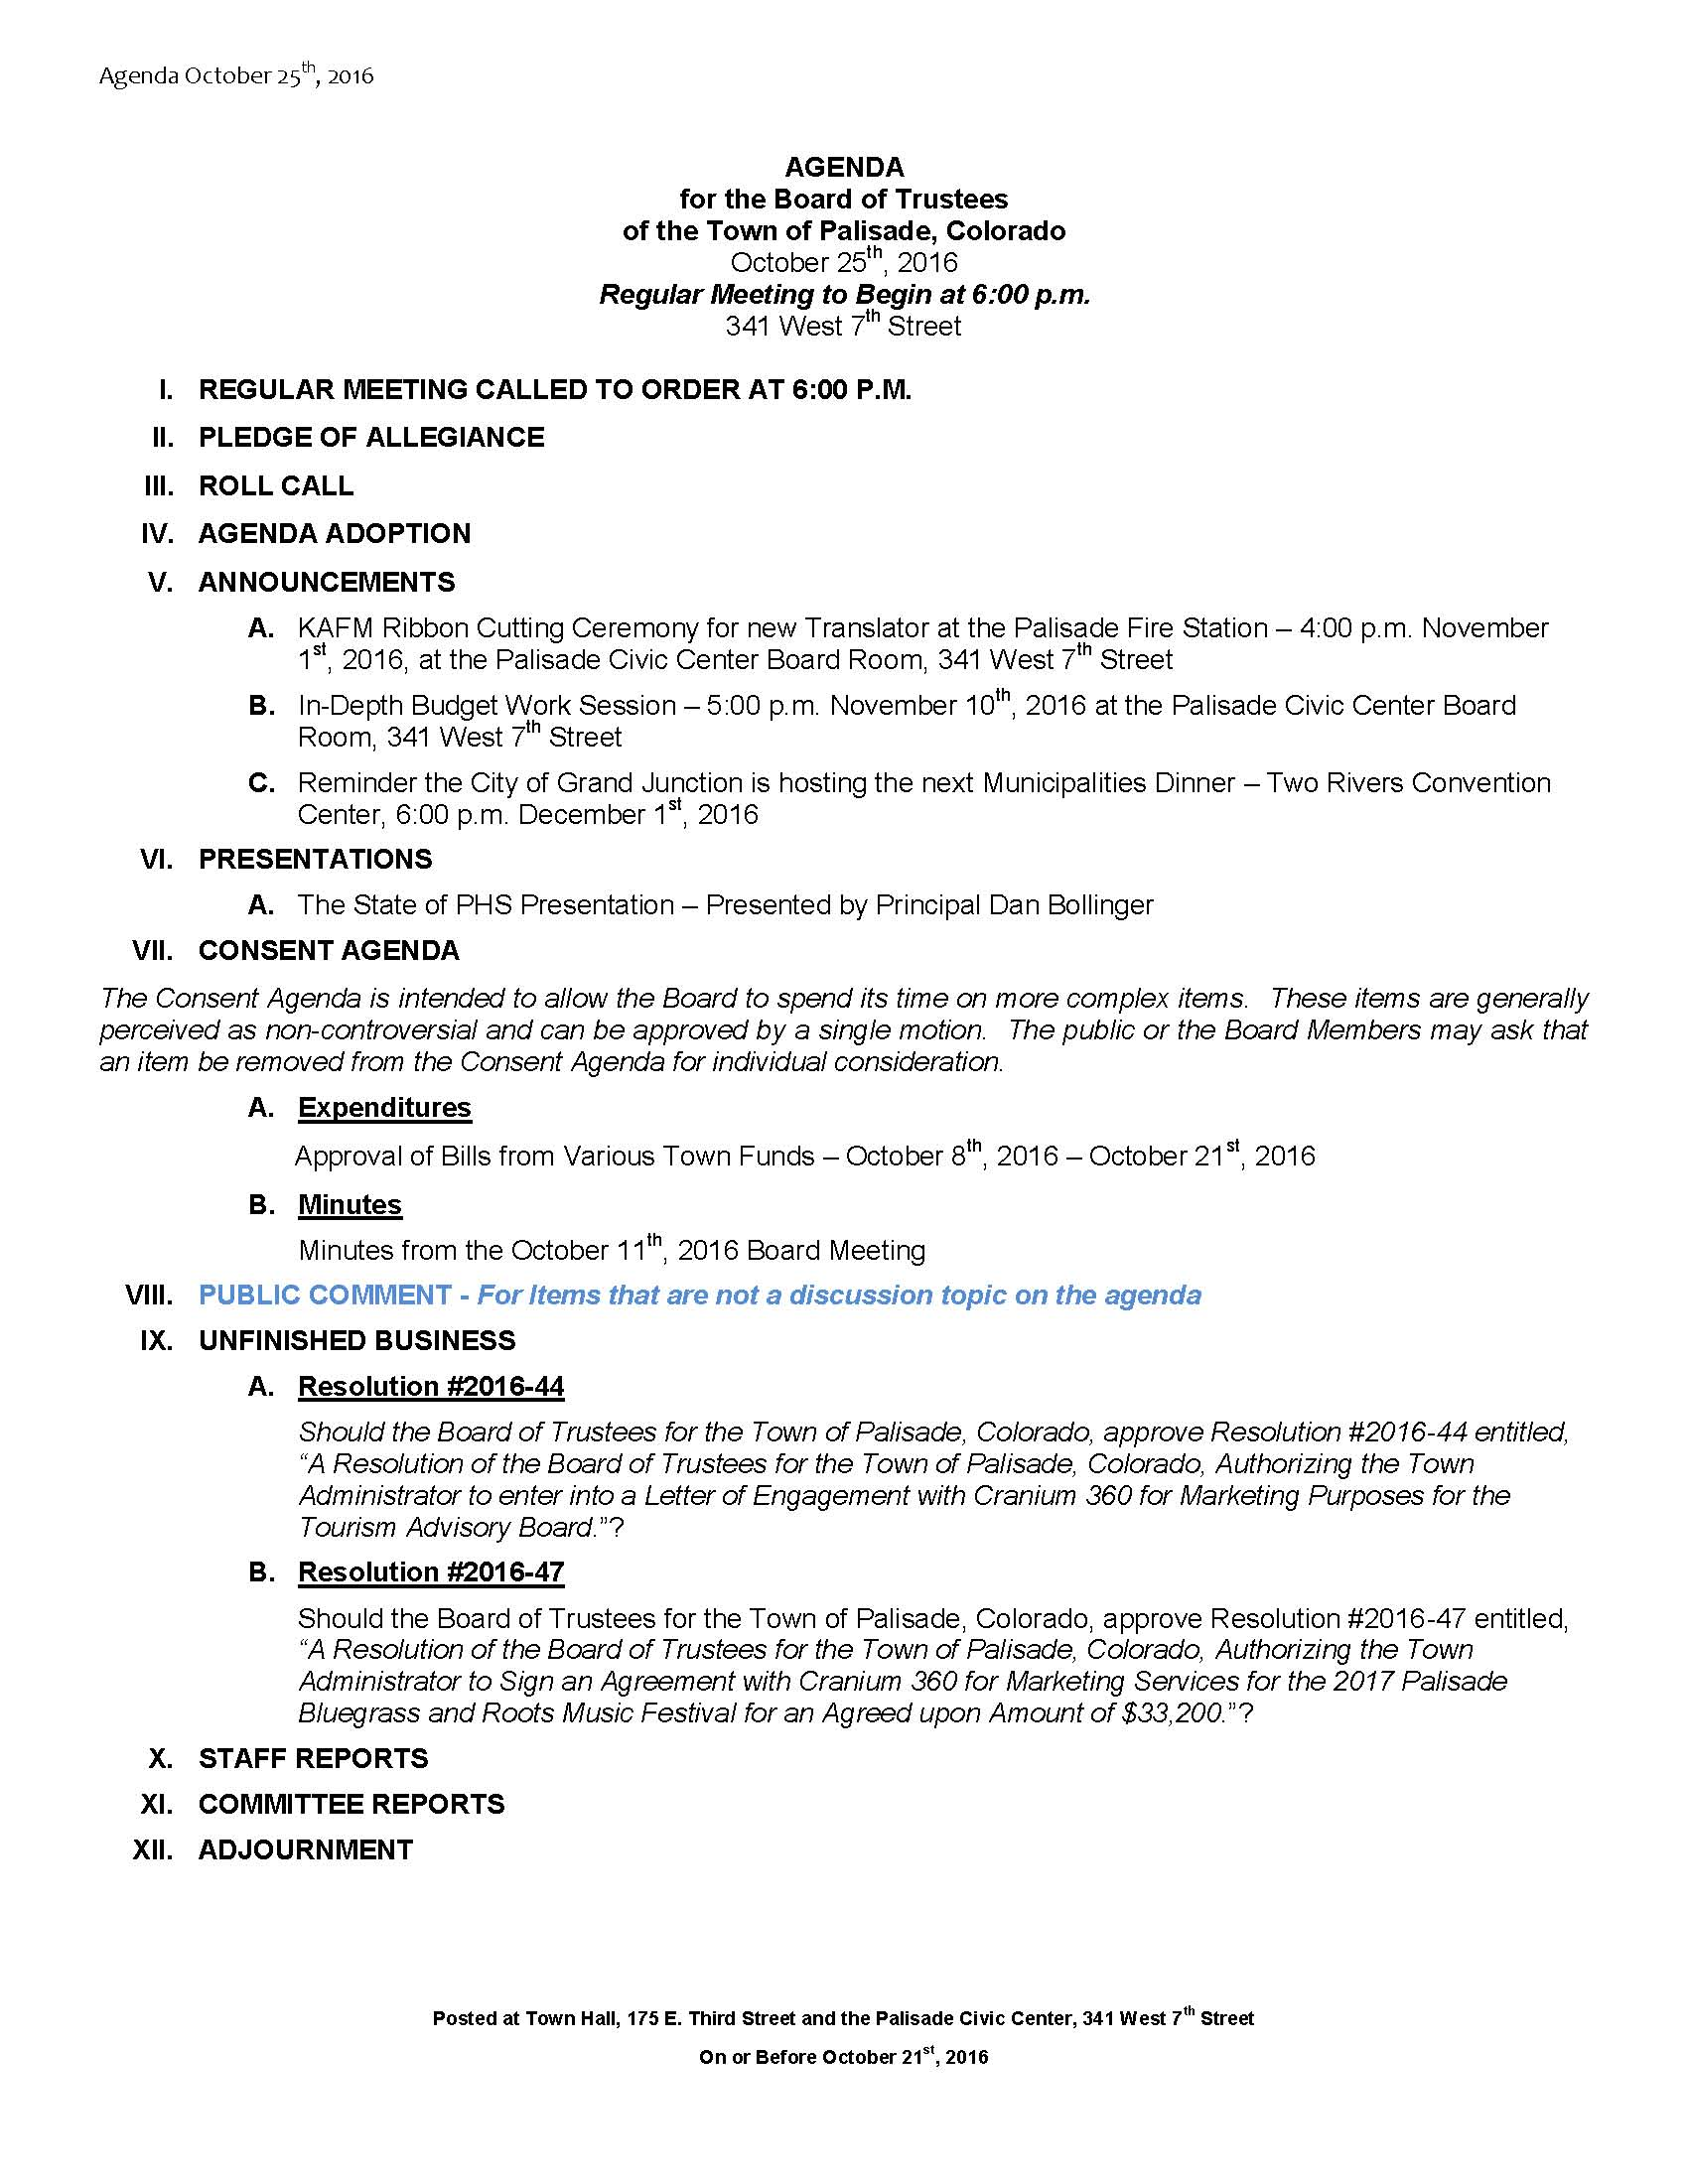 October 25th 2016 Board Meeting Agenda